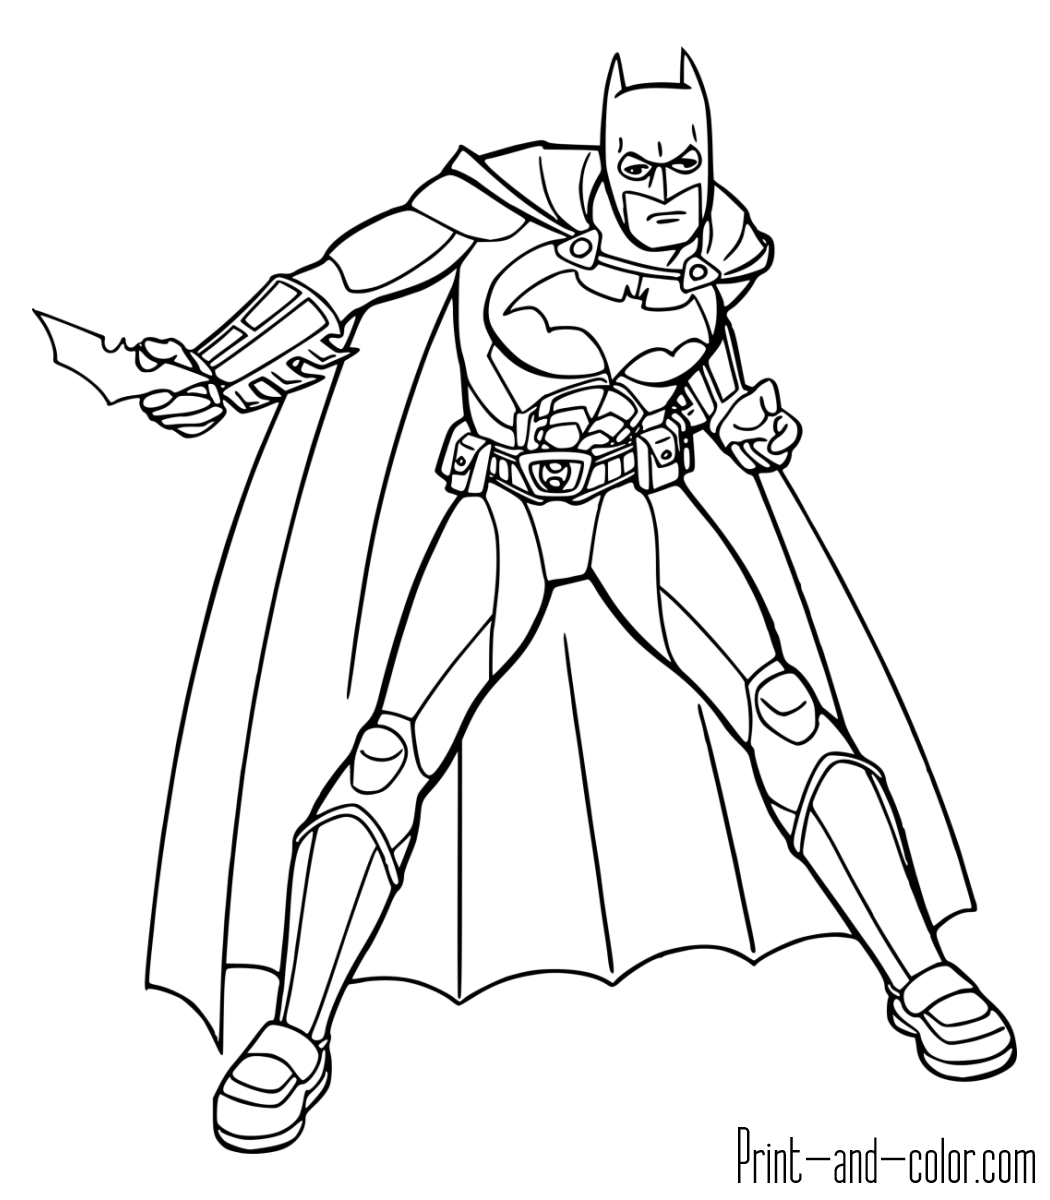 dark knight coloring pages gaia dark knight coloring page free others coloring coloring pages dark knight